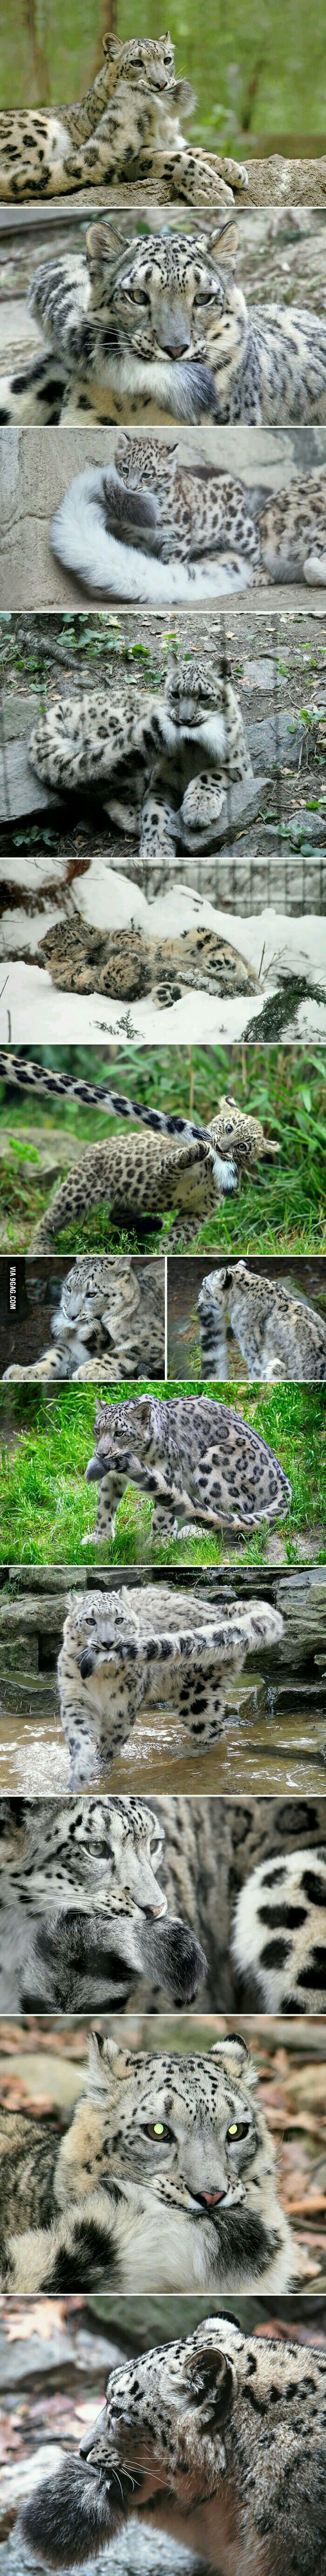 For anybody who's having a bad day here are some snow Leopards nibbling on their tails